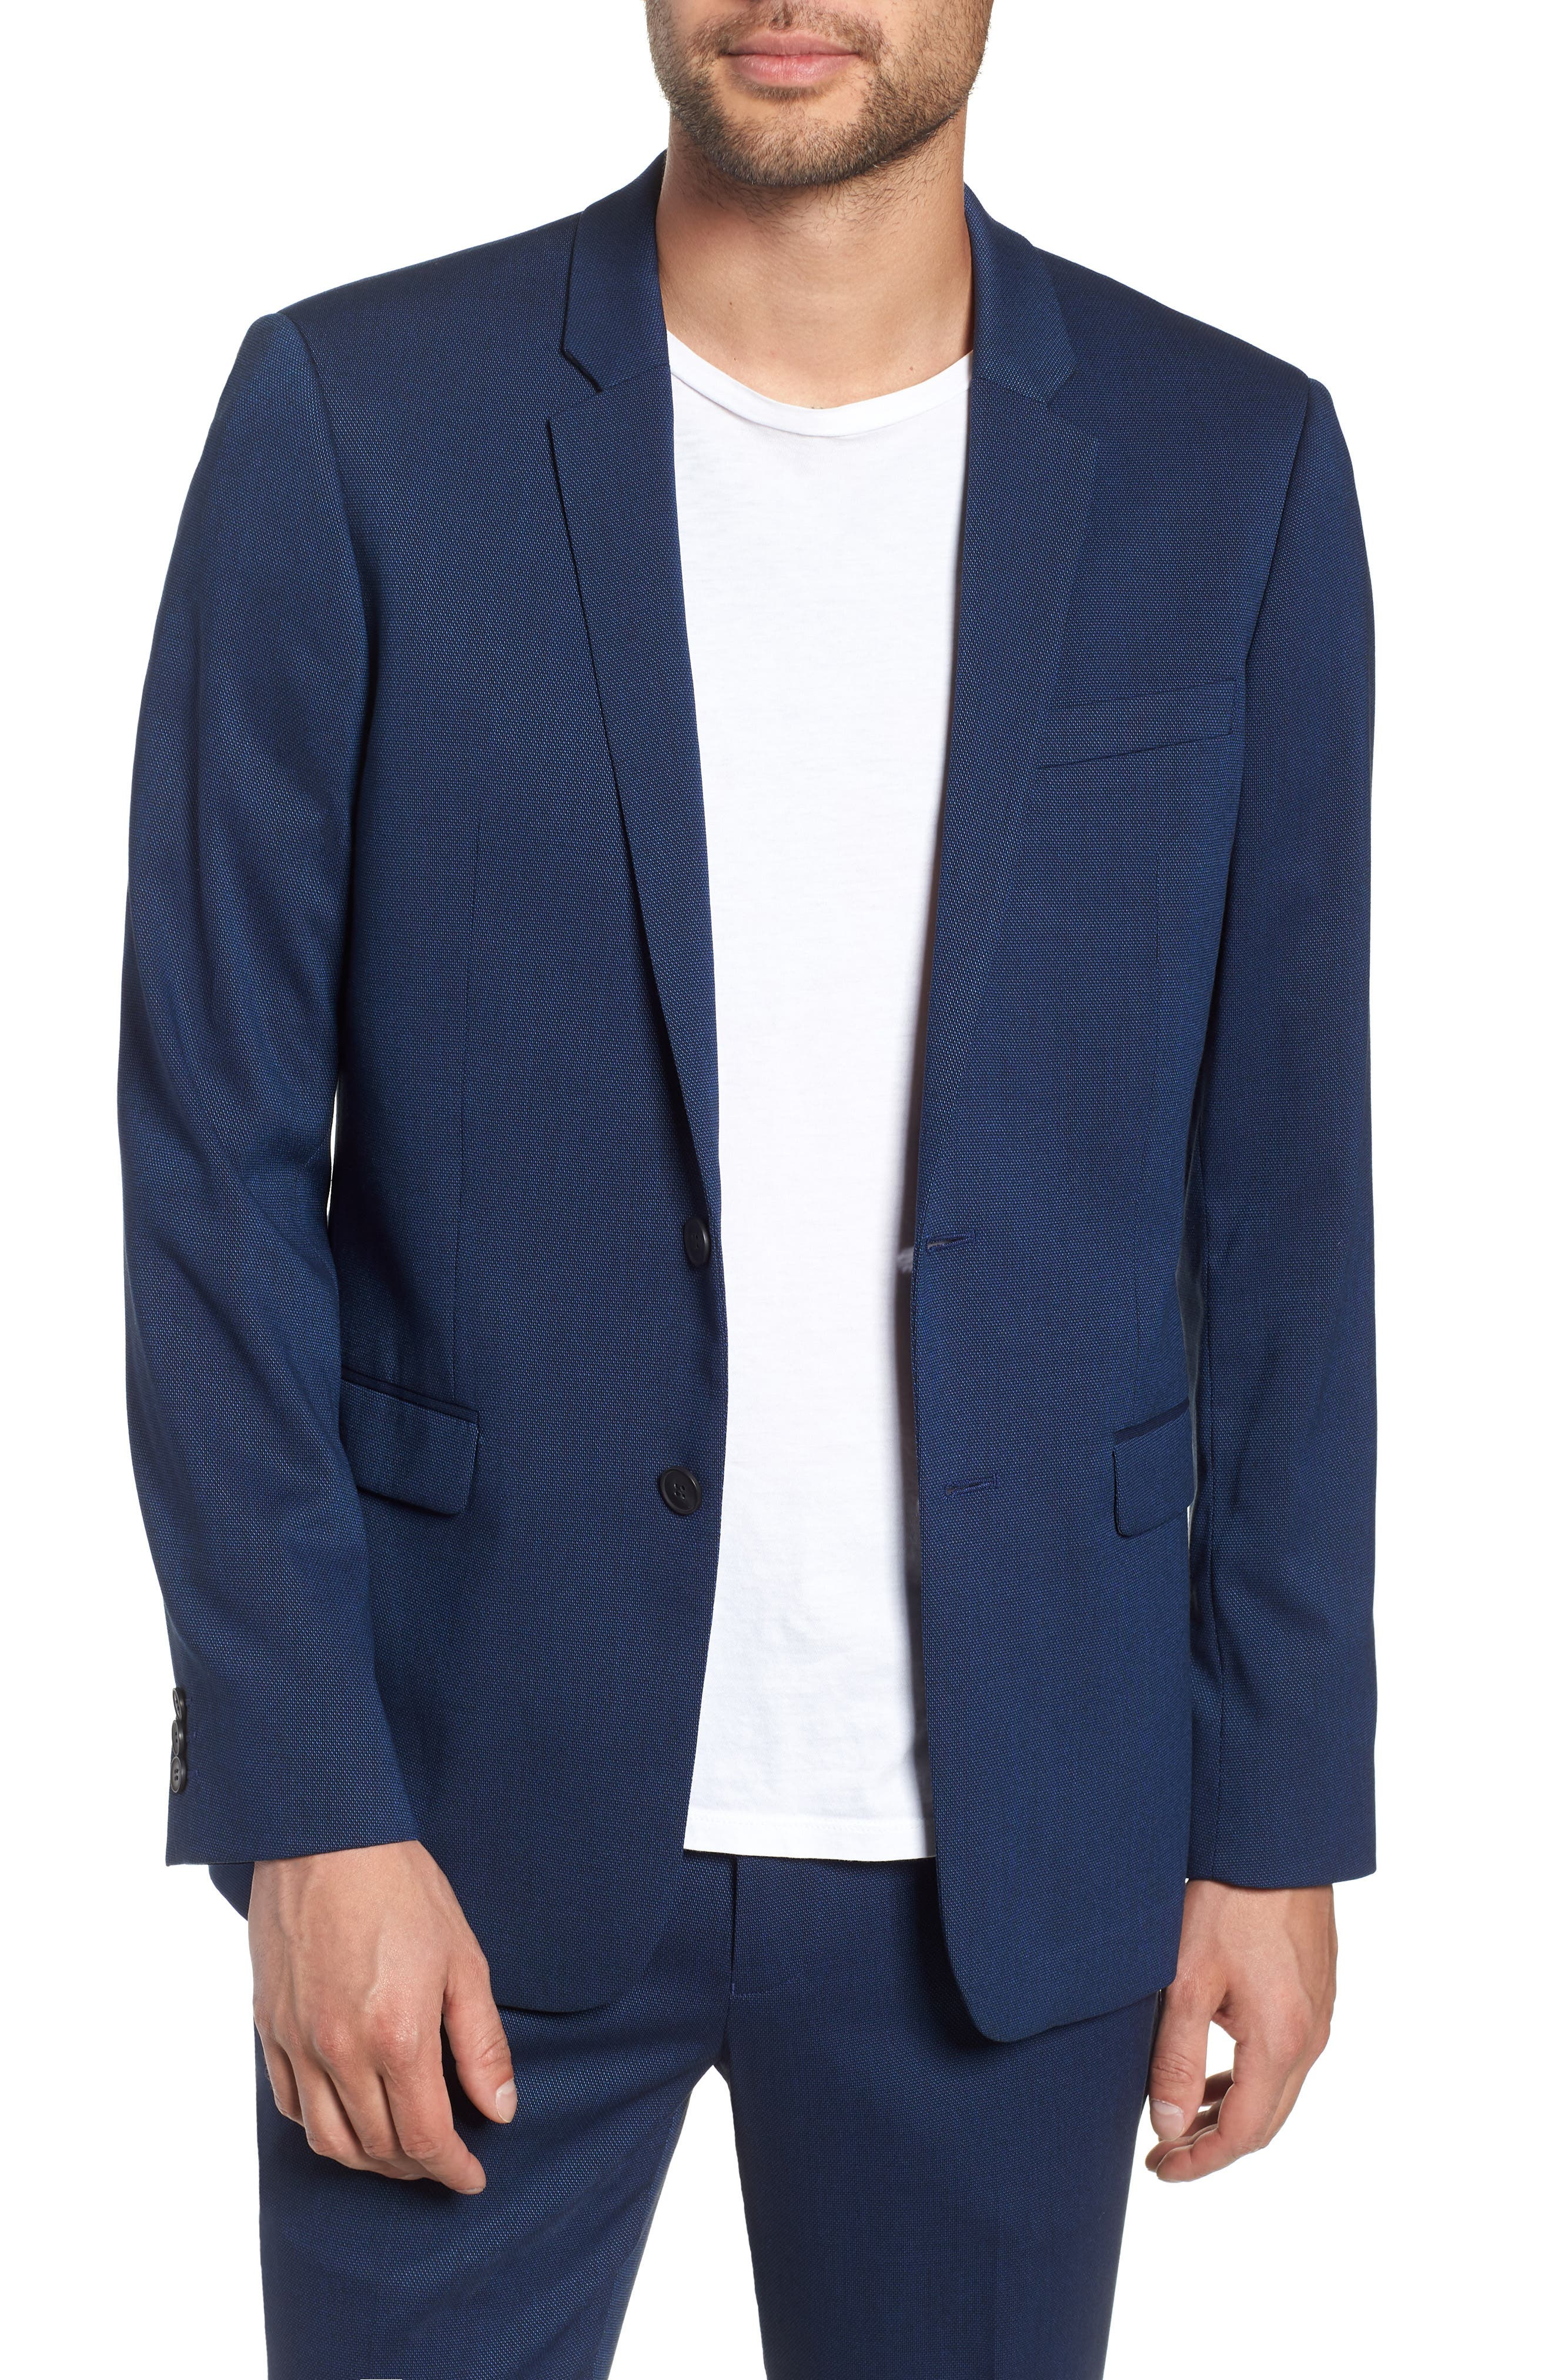 TOPMAN, Skinny Fit Suit Jacket, Main thumbnail 1, color, BLUE